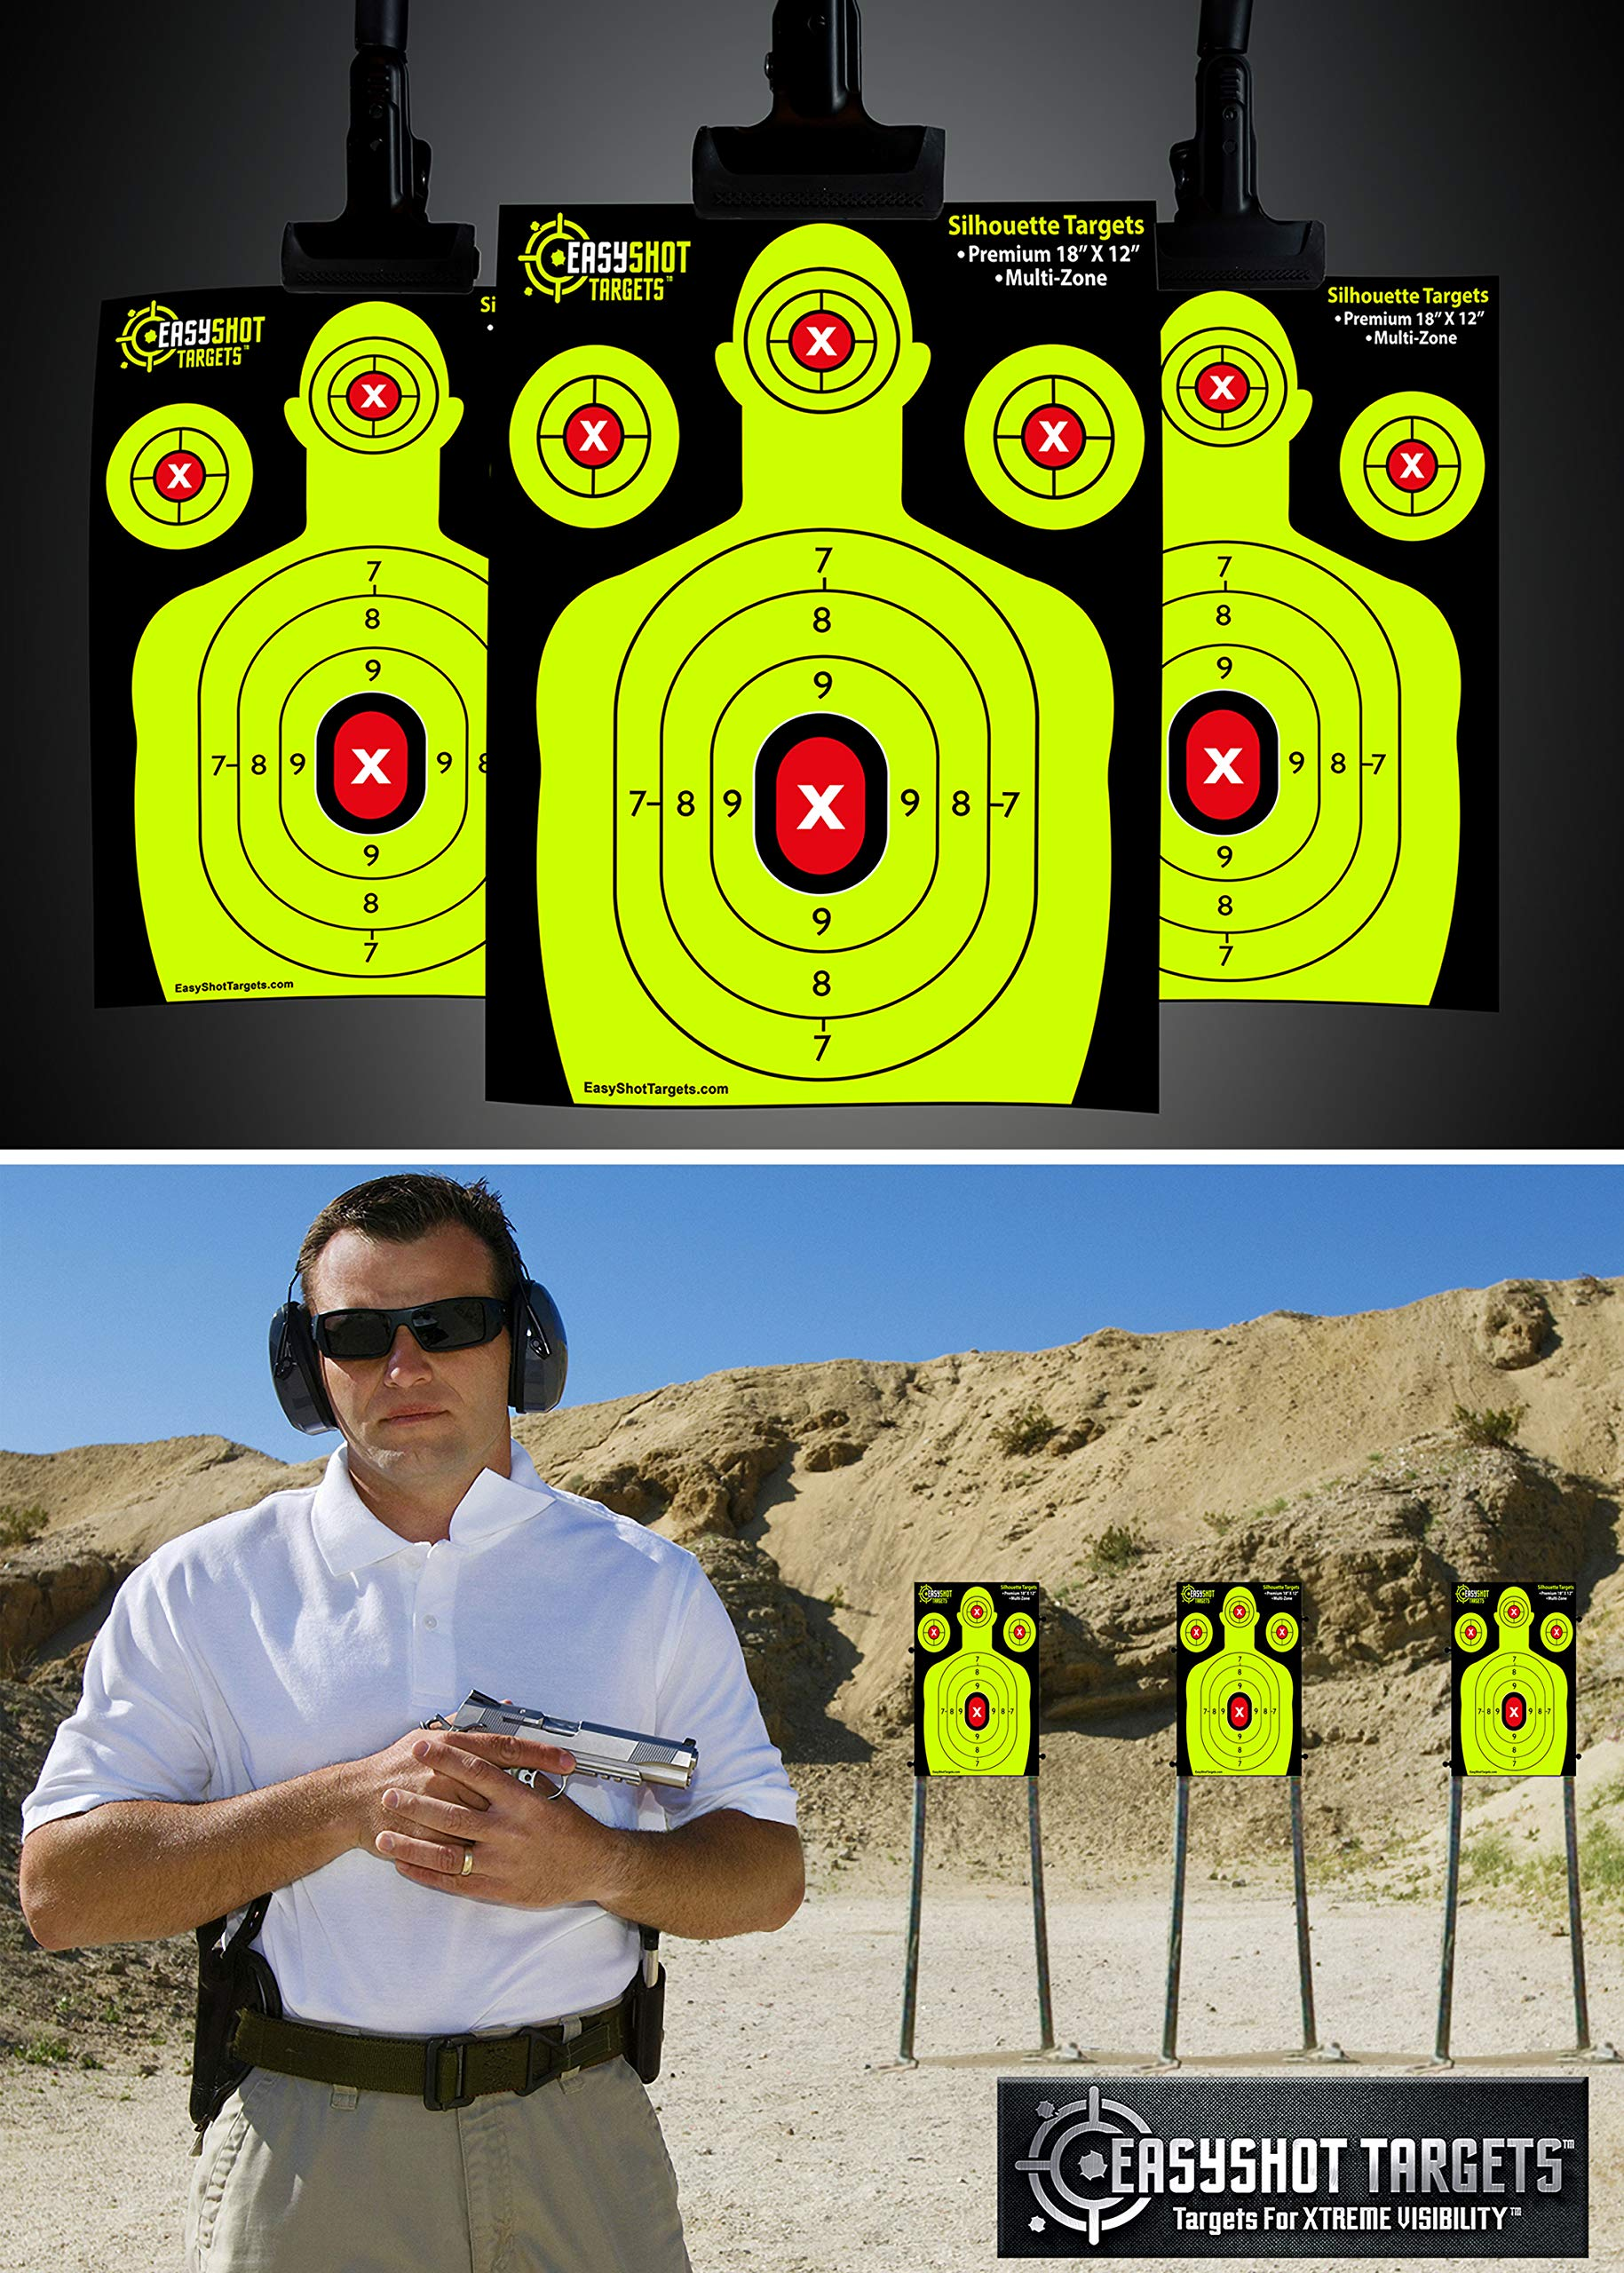 EASYSHOT Shooting Targets 18 X 12 inch. Shots are Easy to See with Our High-Vis Neon Yellow & Red Colors. Thick Silhouette Paper Sheets for Pistols, Rifles, BB Guns, Airsoft, Pellet Guns & More. by EasyShot Targets (Image #4)